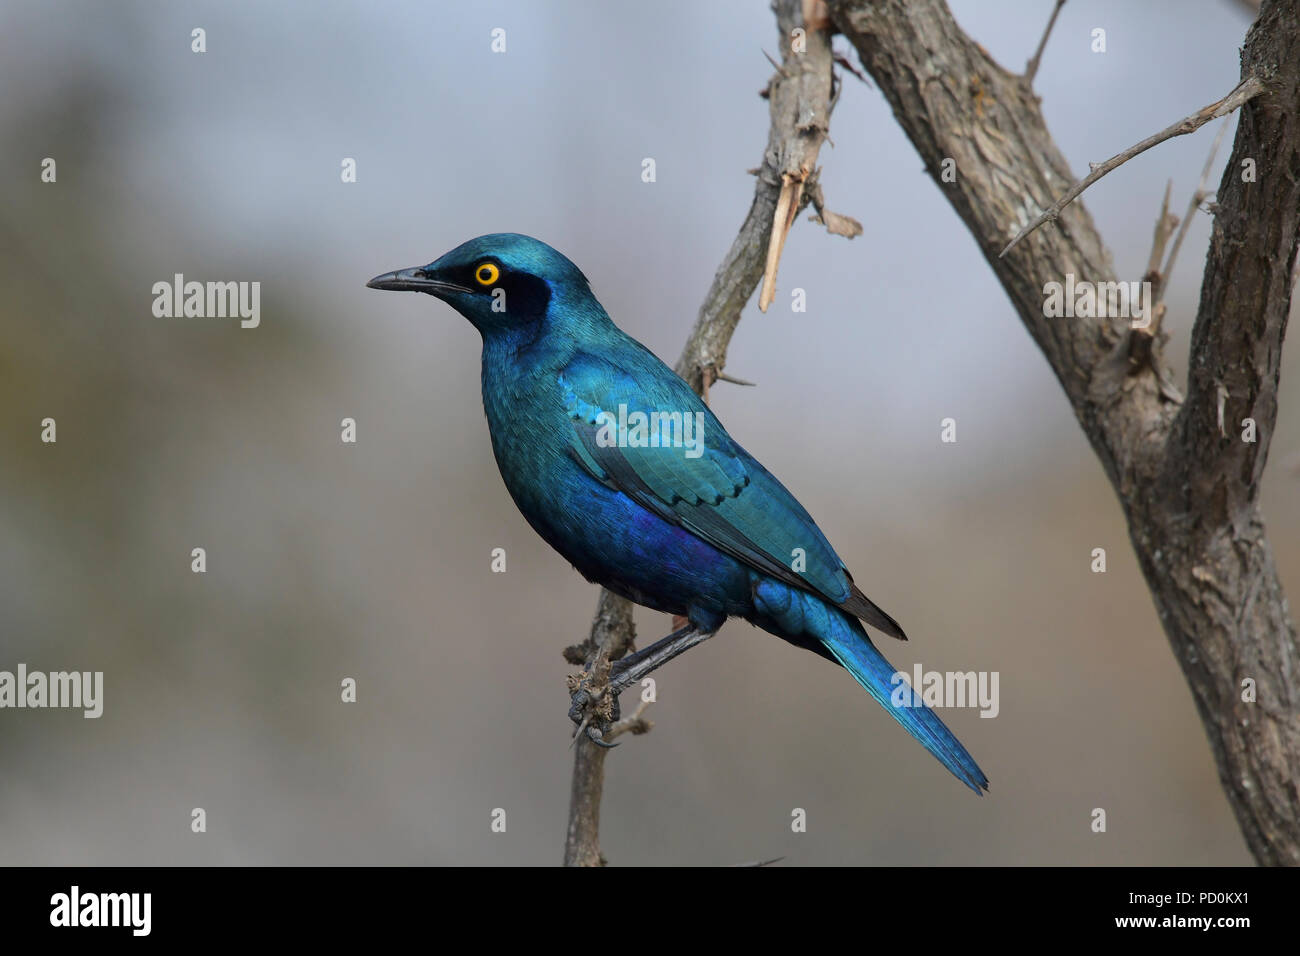 South Africa, a fantastic travel destination to experience third and first world together. Brilliant blue Cape glossy starling showing off its plumage. - Stock Image